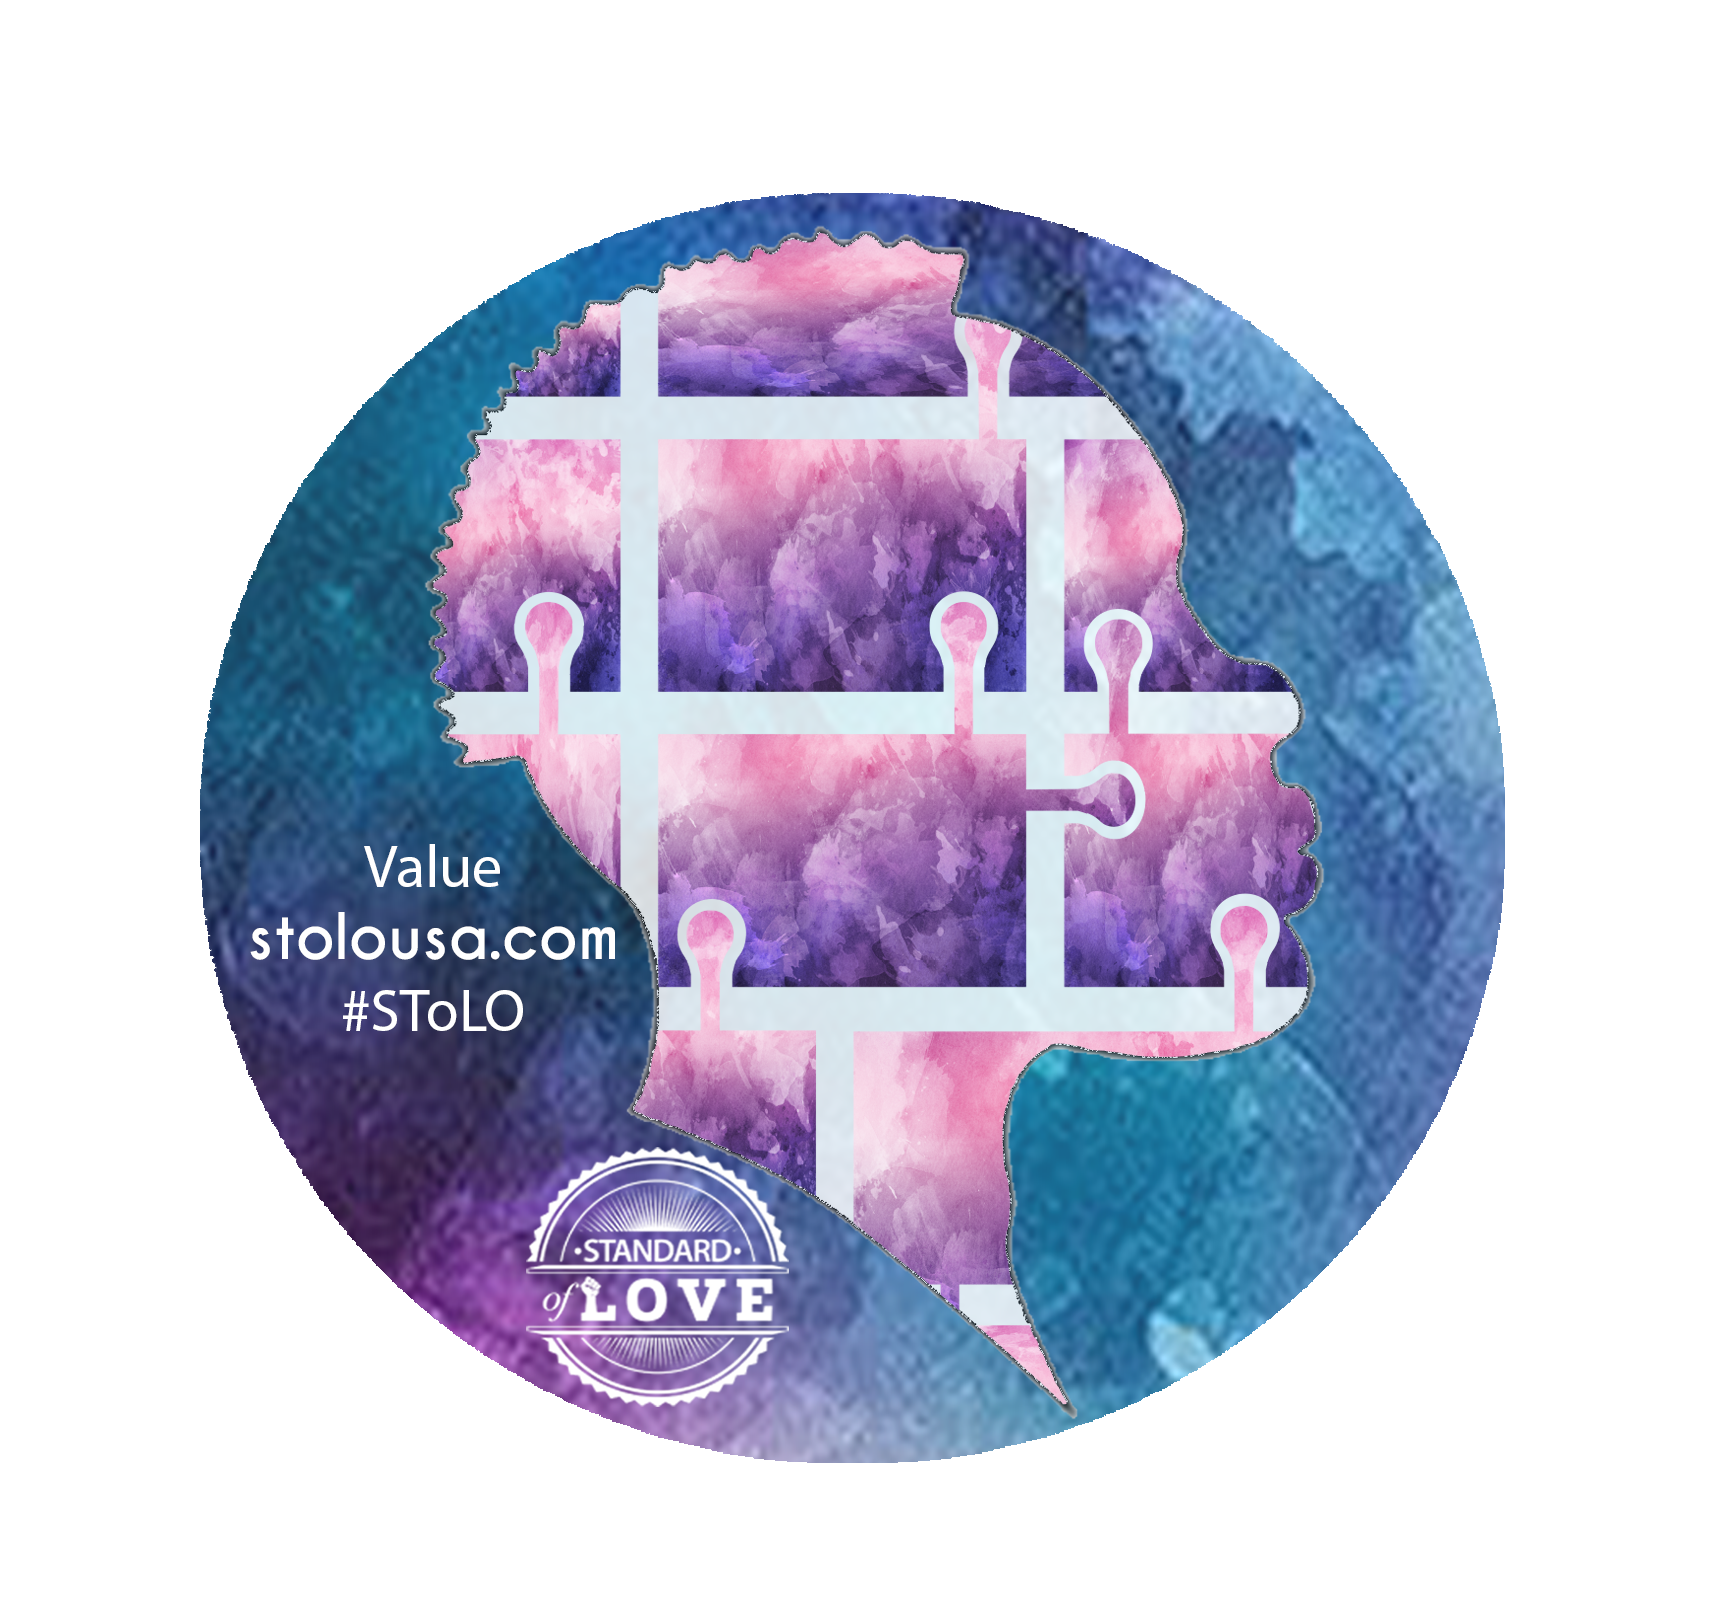 VALUES   Your values are how you define and show your core principles. Standard of LOVE asks that your values authentically reflect your character; character is the foundation for reputation.